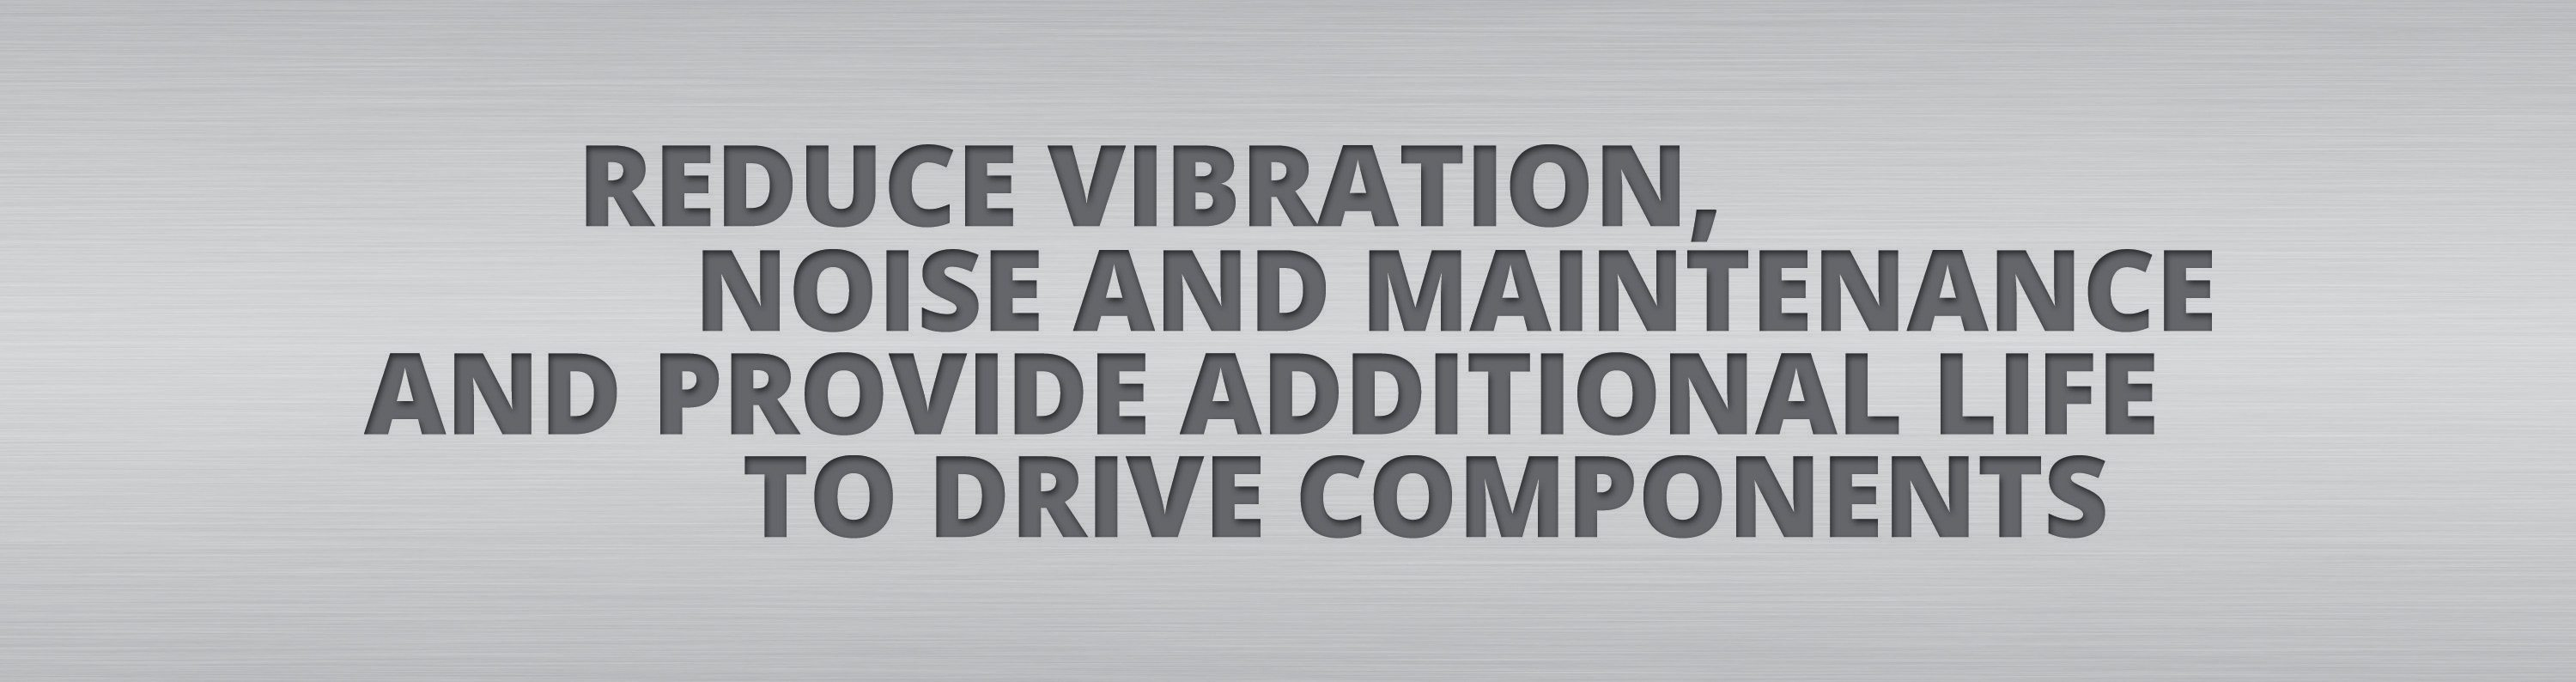 Reduce vibration, noise and maintenance and provide additional life to drive components